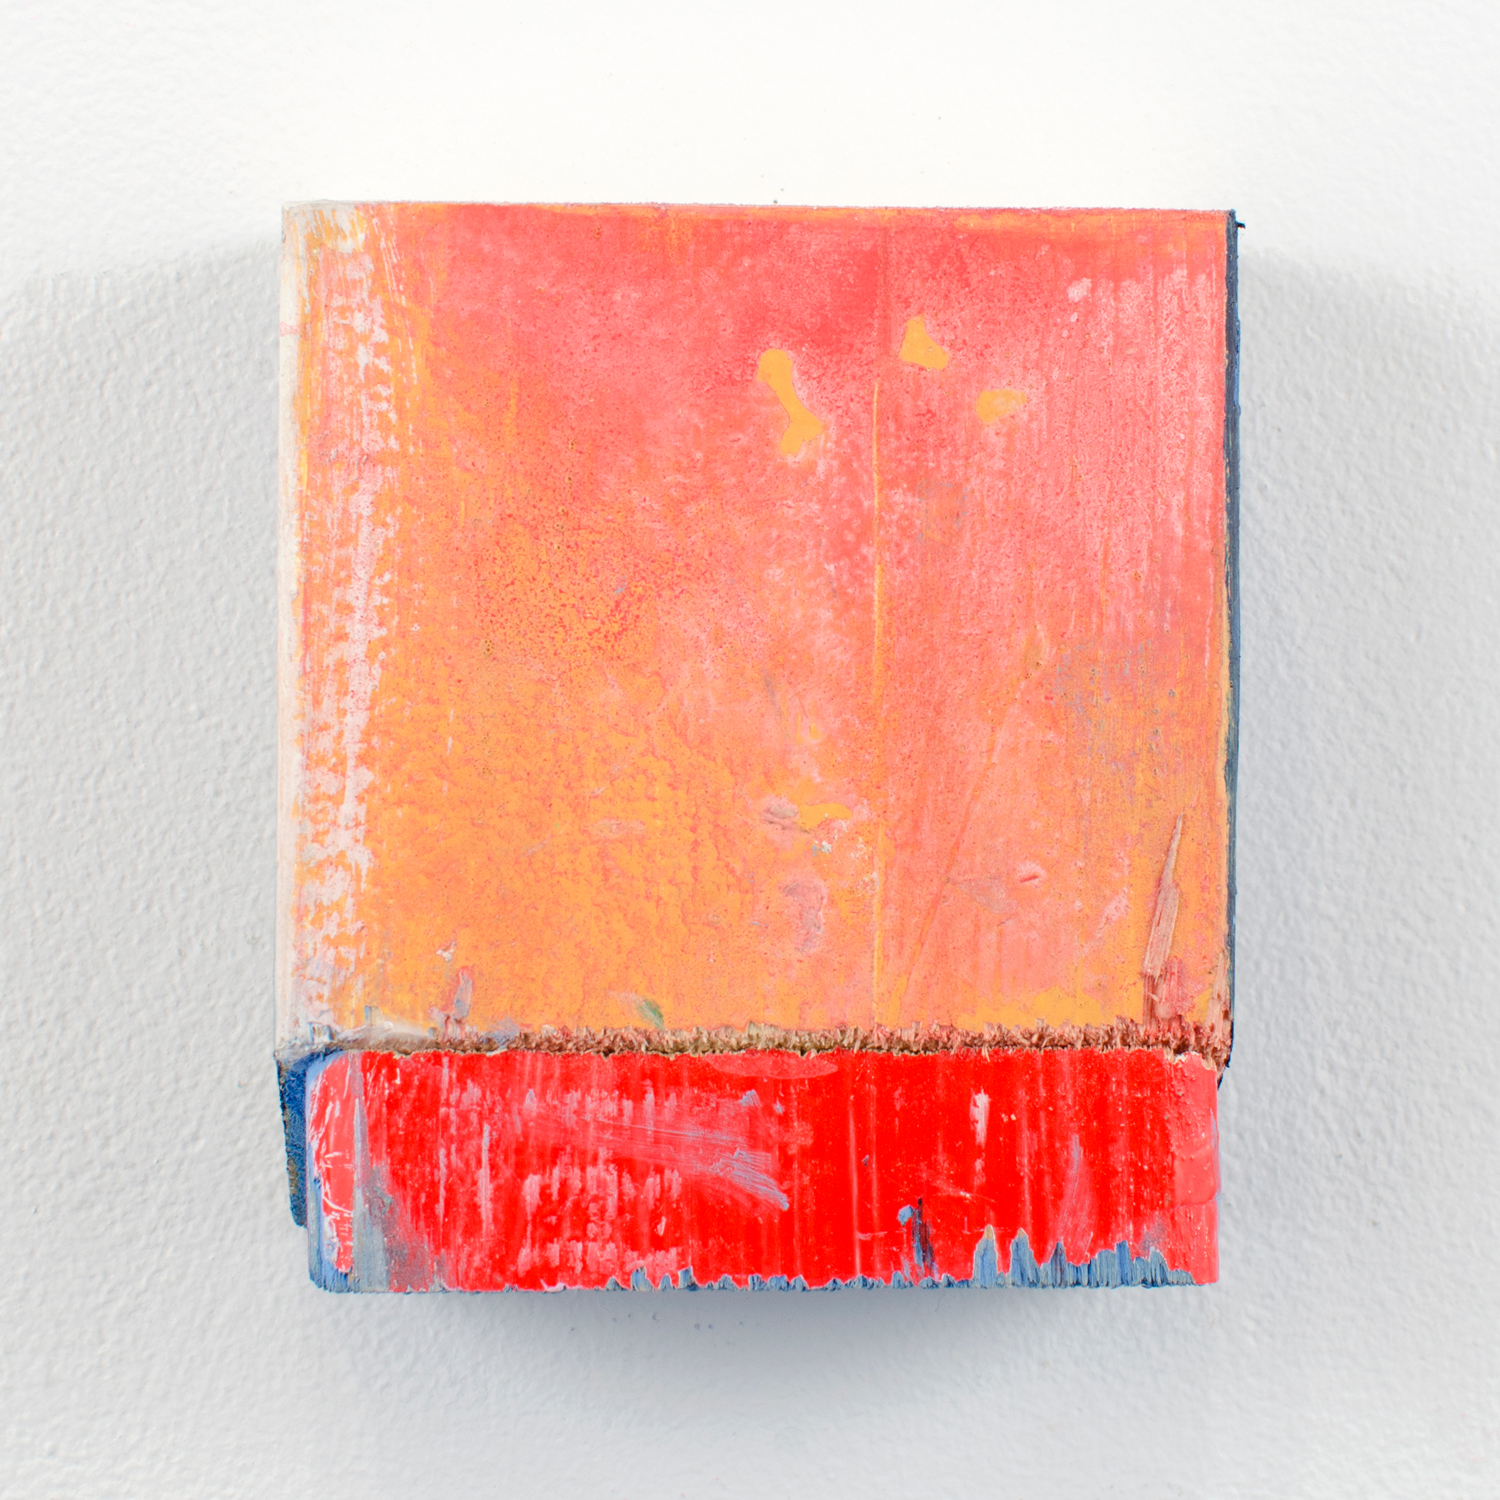 Red Dot Special , 2012, acrylic on wood, 4 x 3.5 x 1.5 in